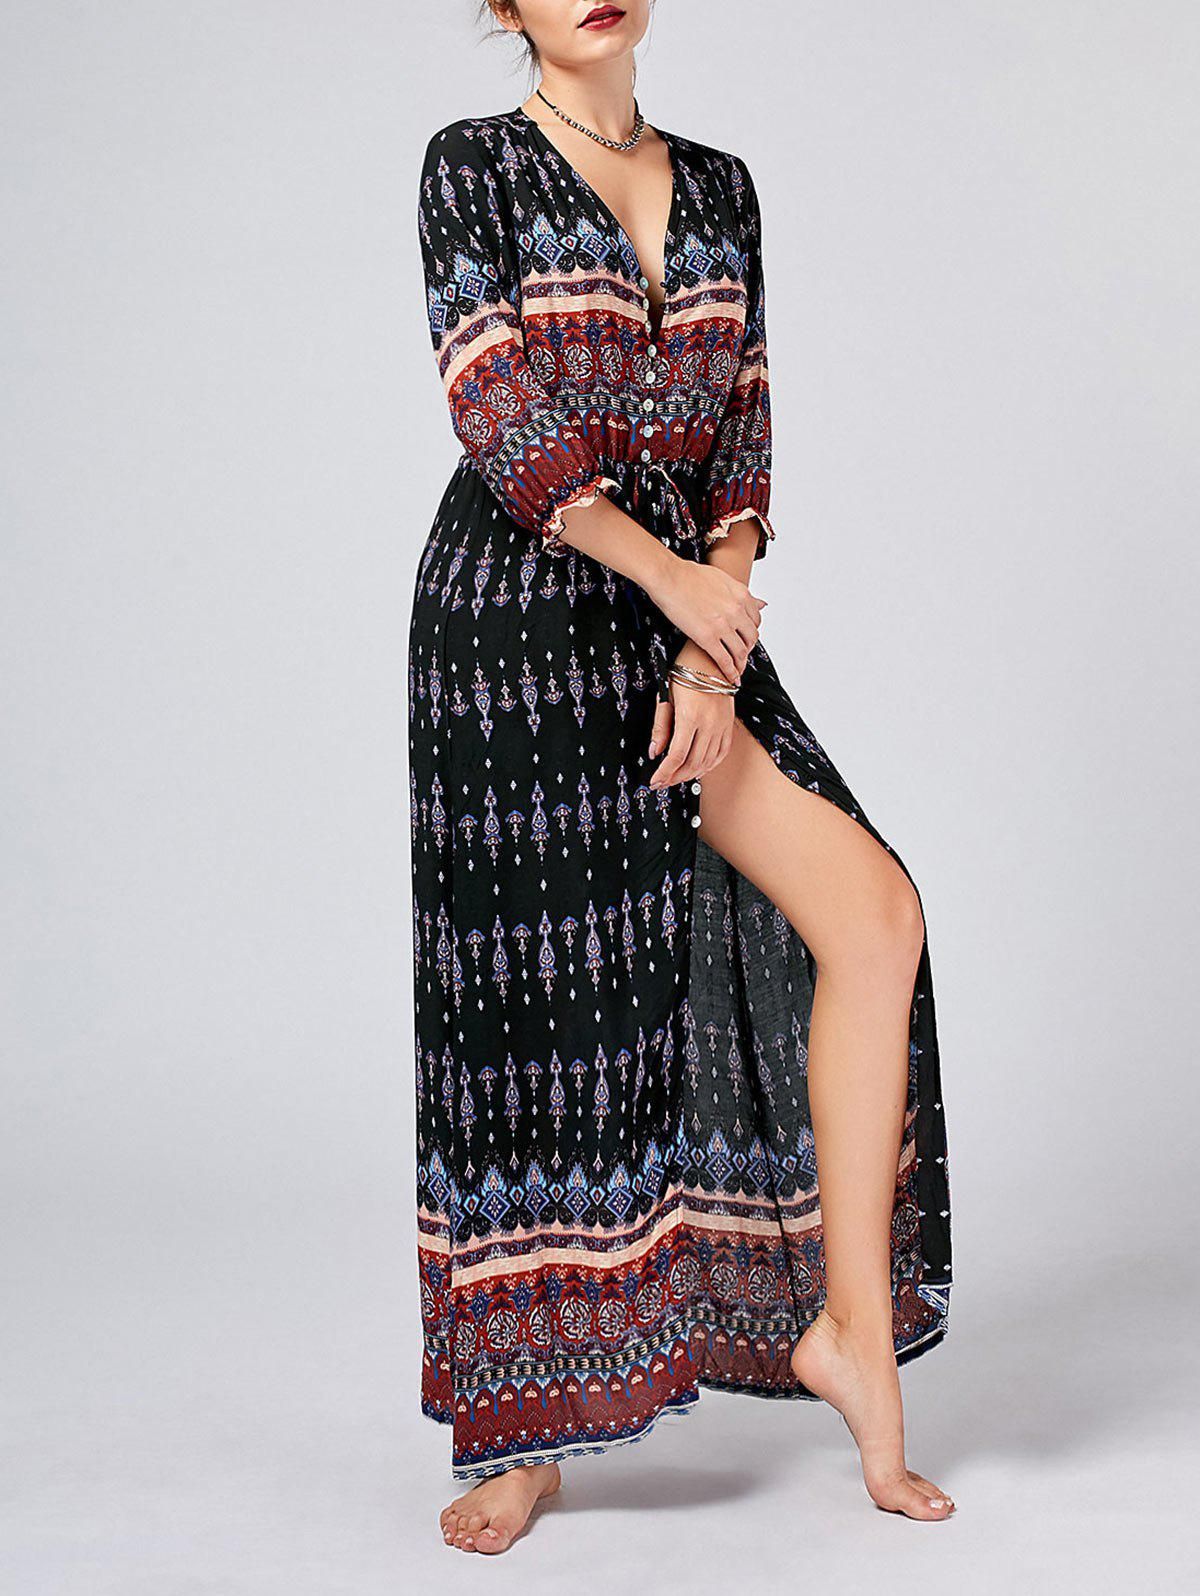 Tribal Print Button Down Split Bohemian Dress - Noir M